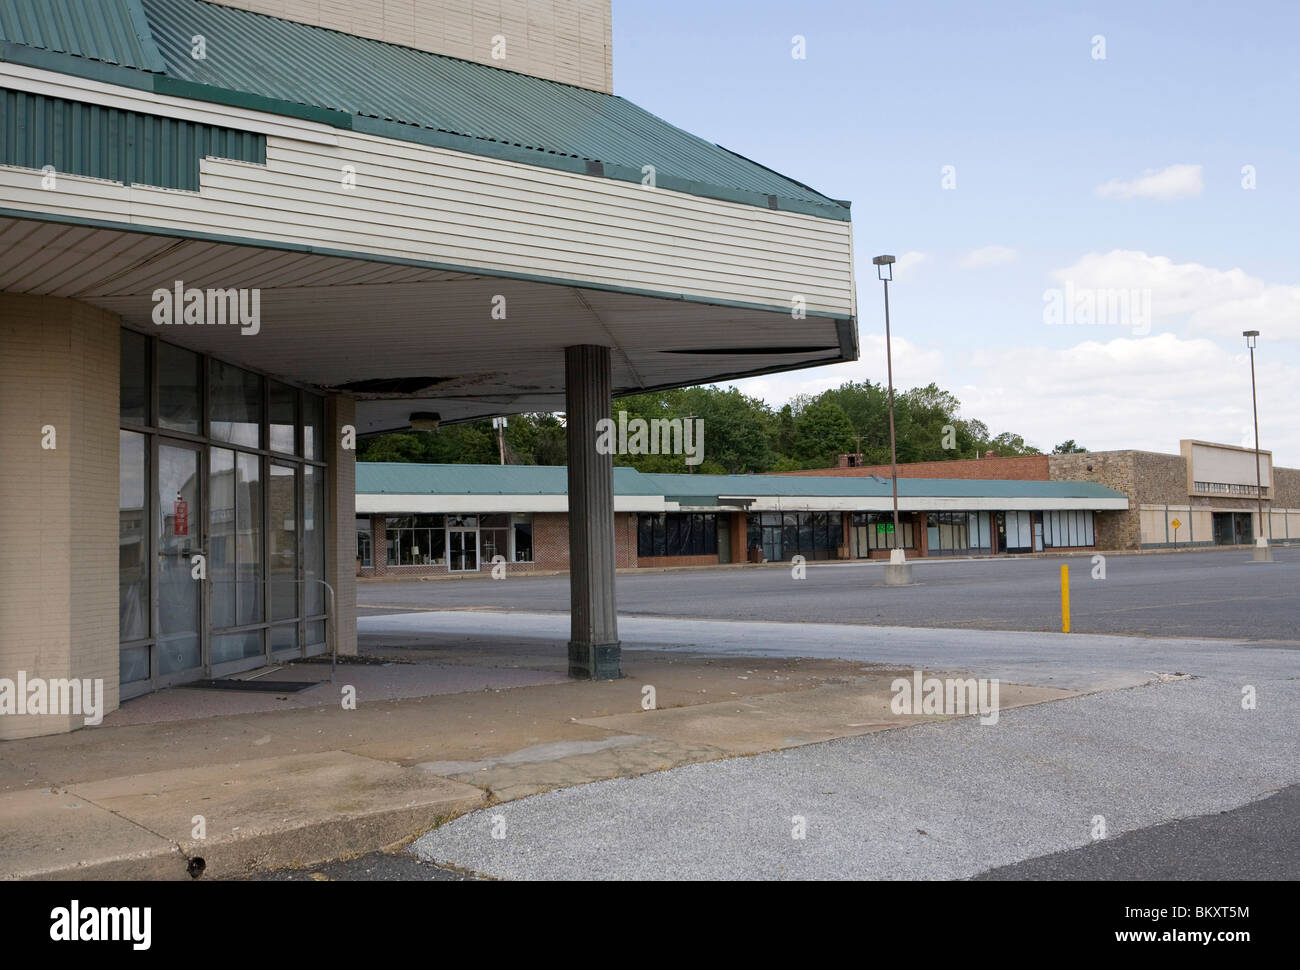 An empty retail shopping center.  - Stock Image